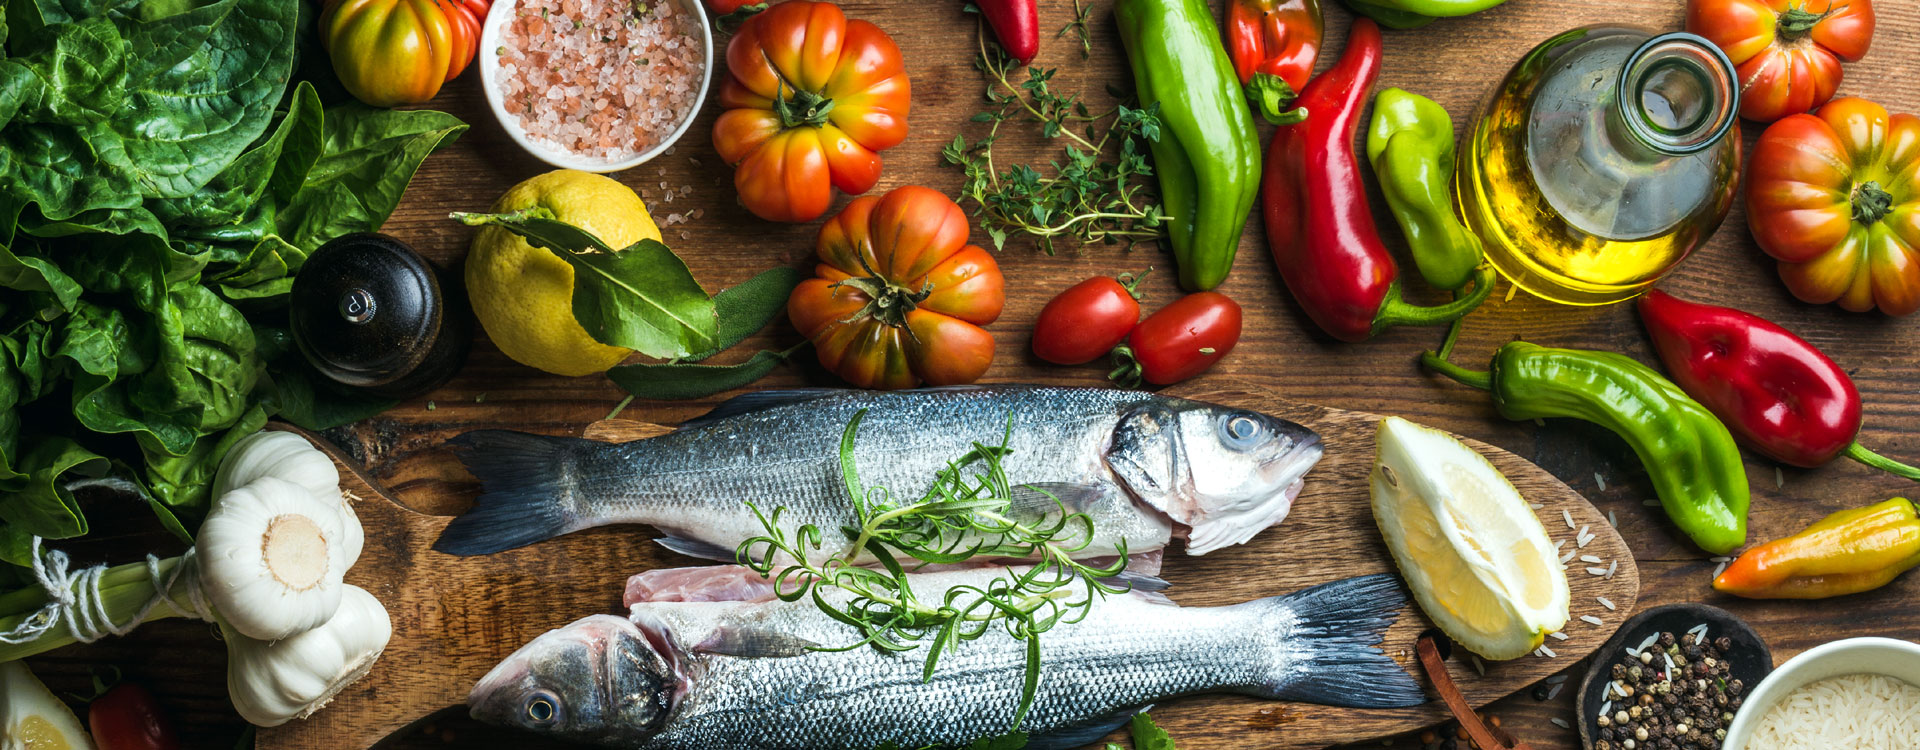 Diet Food Recipes For Heart Patients